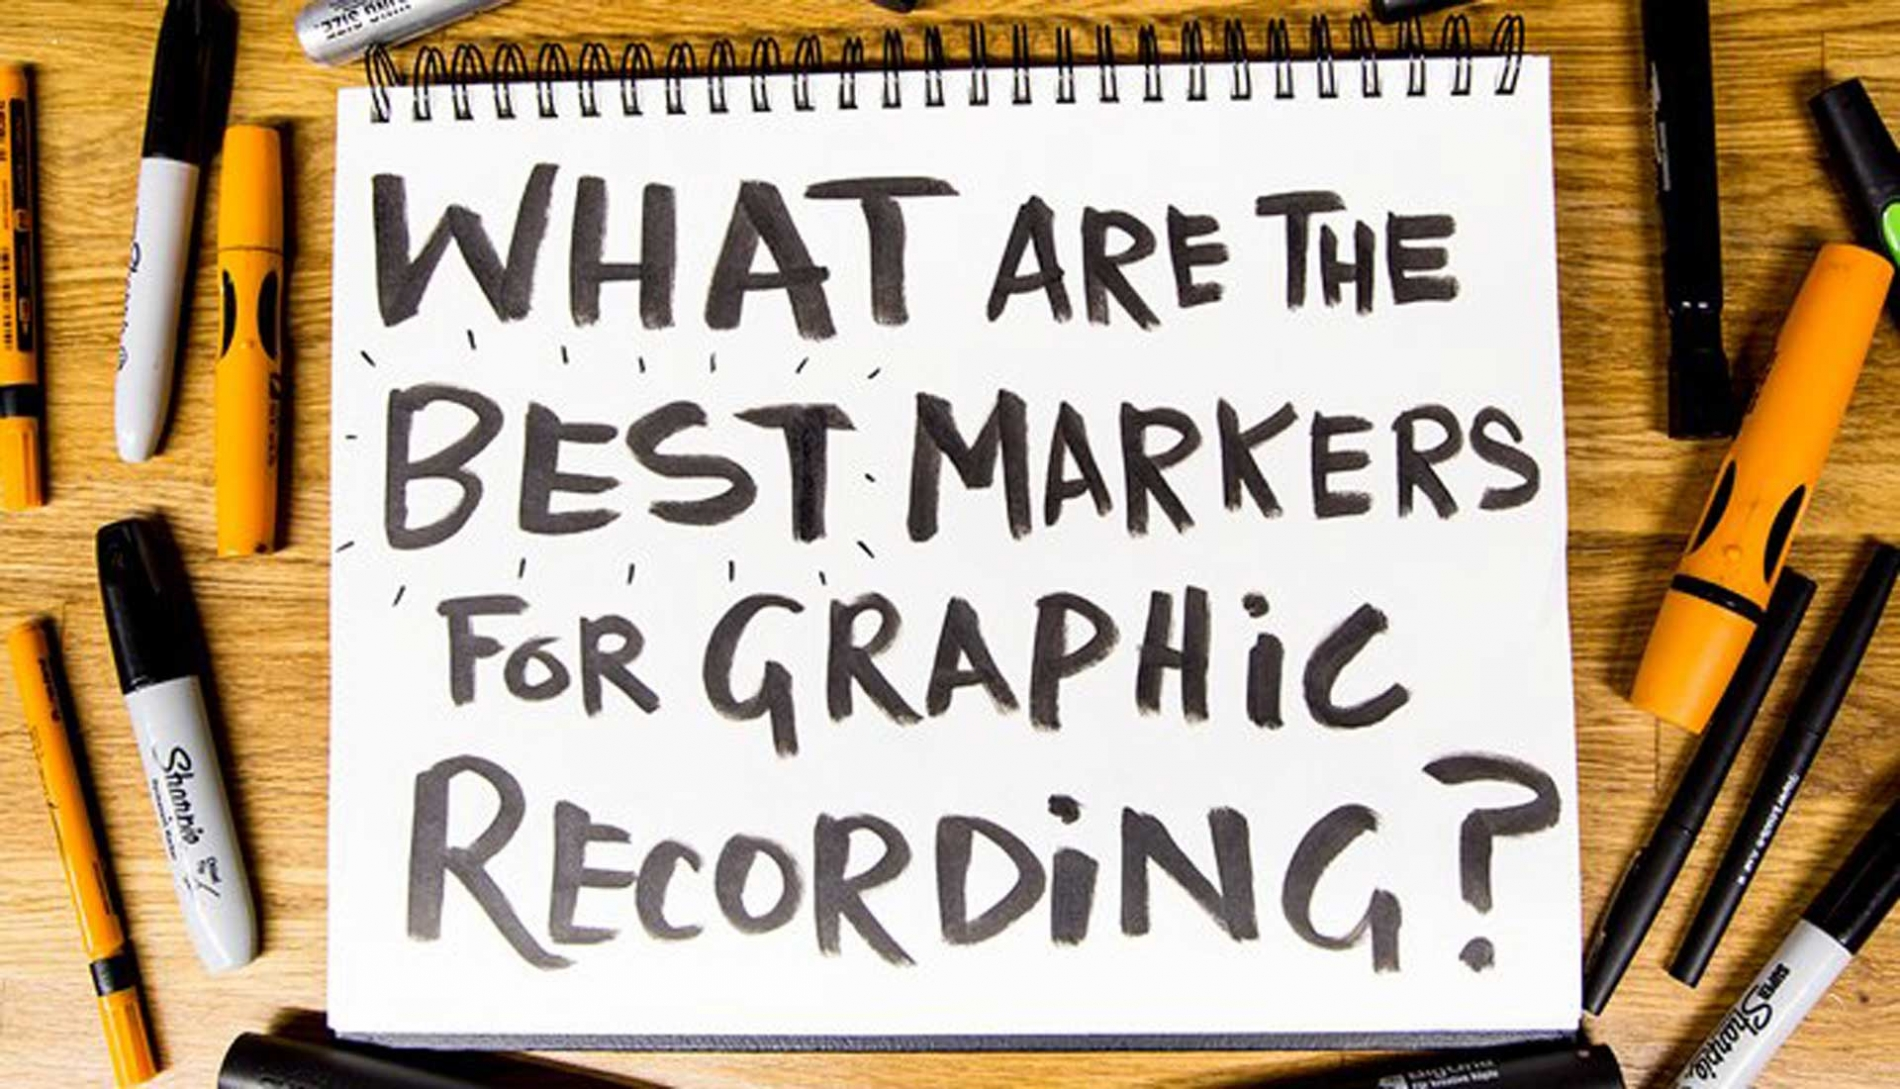 What Are The Best Markers For Graphic Recording?